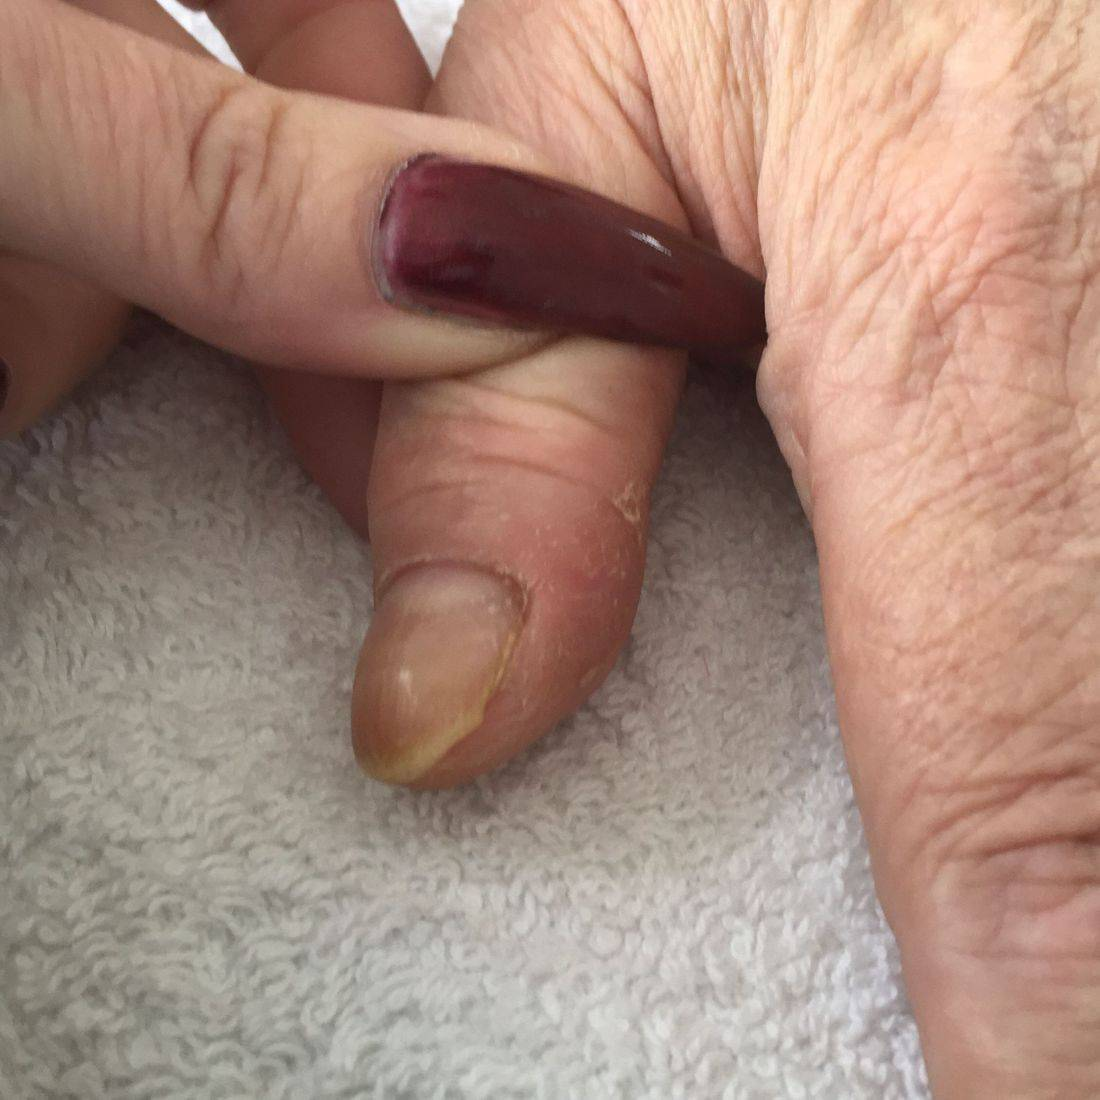 Nails before sculptured nails applied